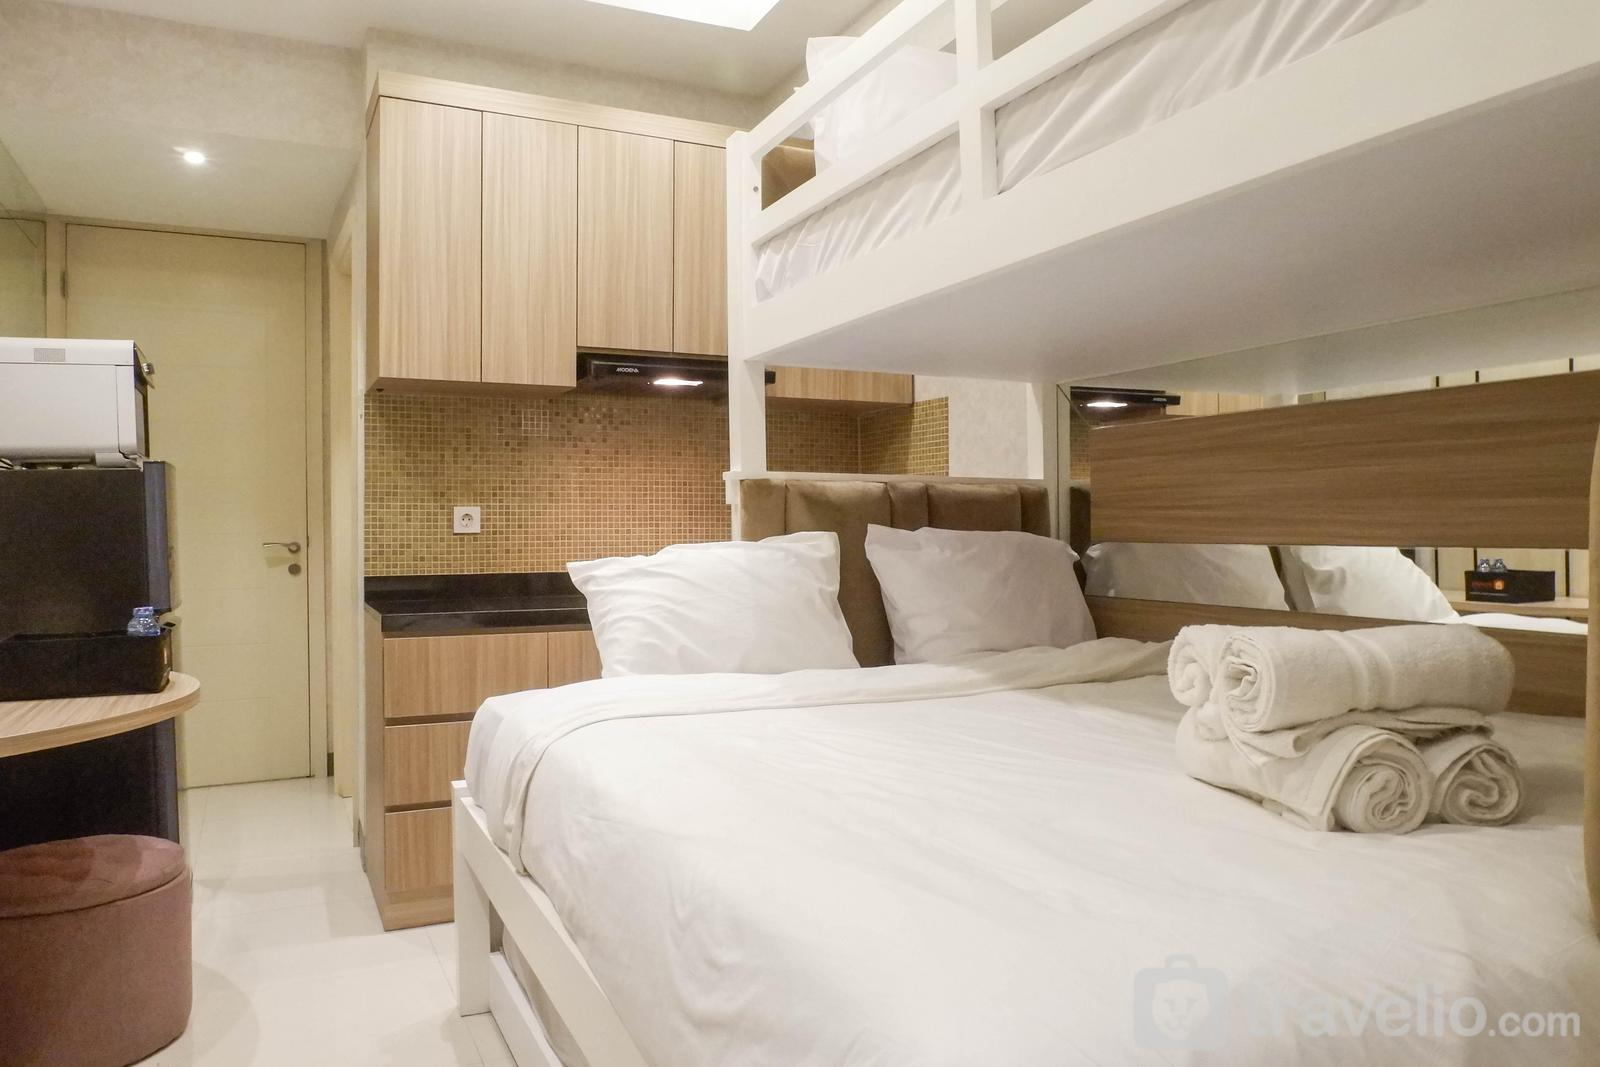 Apartemen Supermall Mansion - Best Studio Benson Apartment Connected to Pakuwon Mall next to Anderson By Travelio